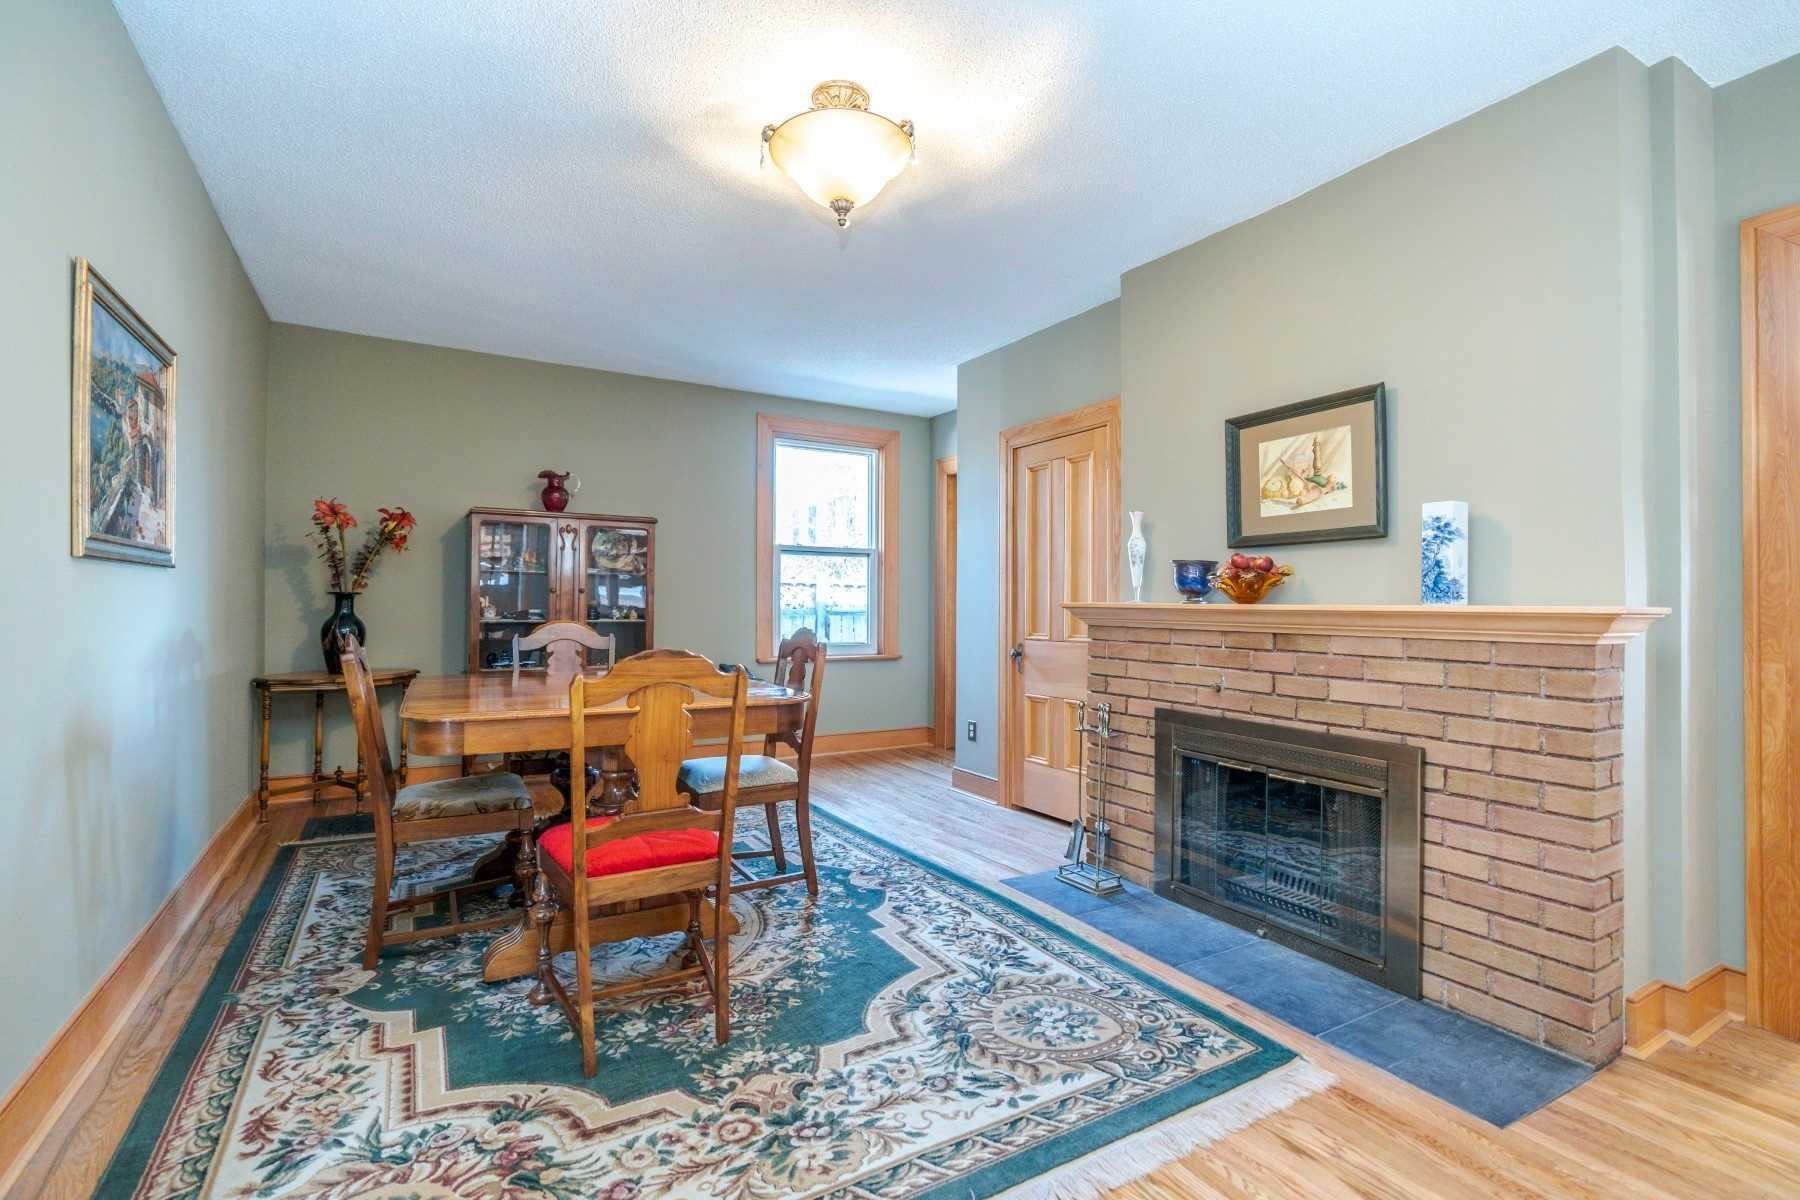 Photo 5: Photos: 1009 S Centre Street in Whitby: Downtown Whitby House (Bungalow) for sale : MLS®# E4714116